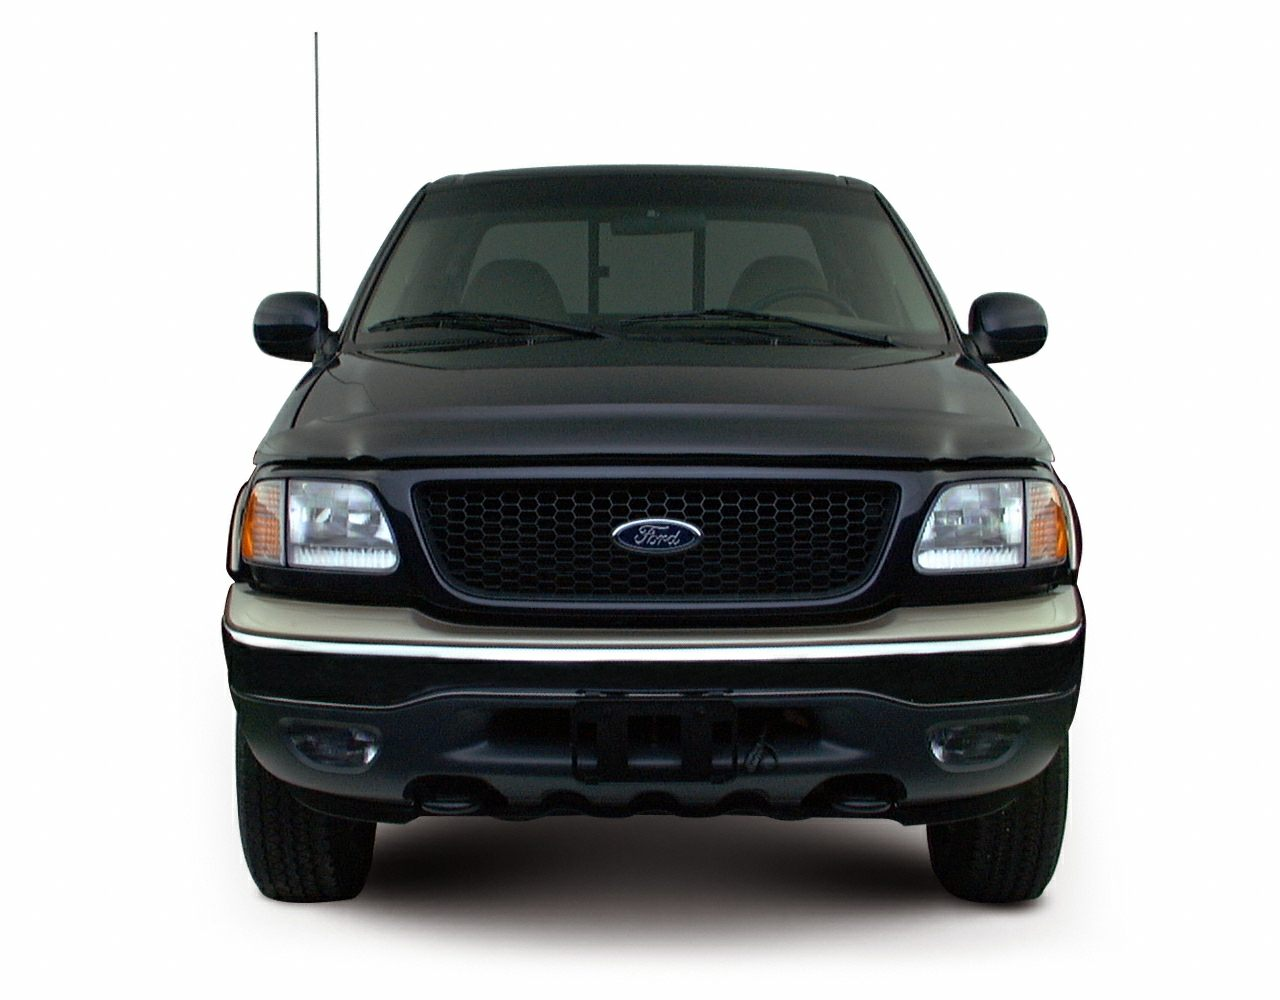 2000 Ford F-150 Exterior Photo